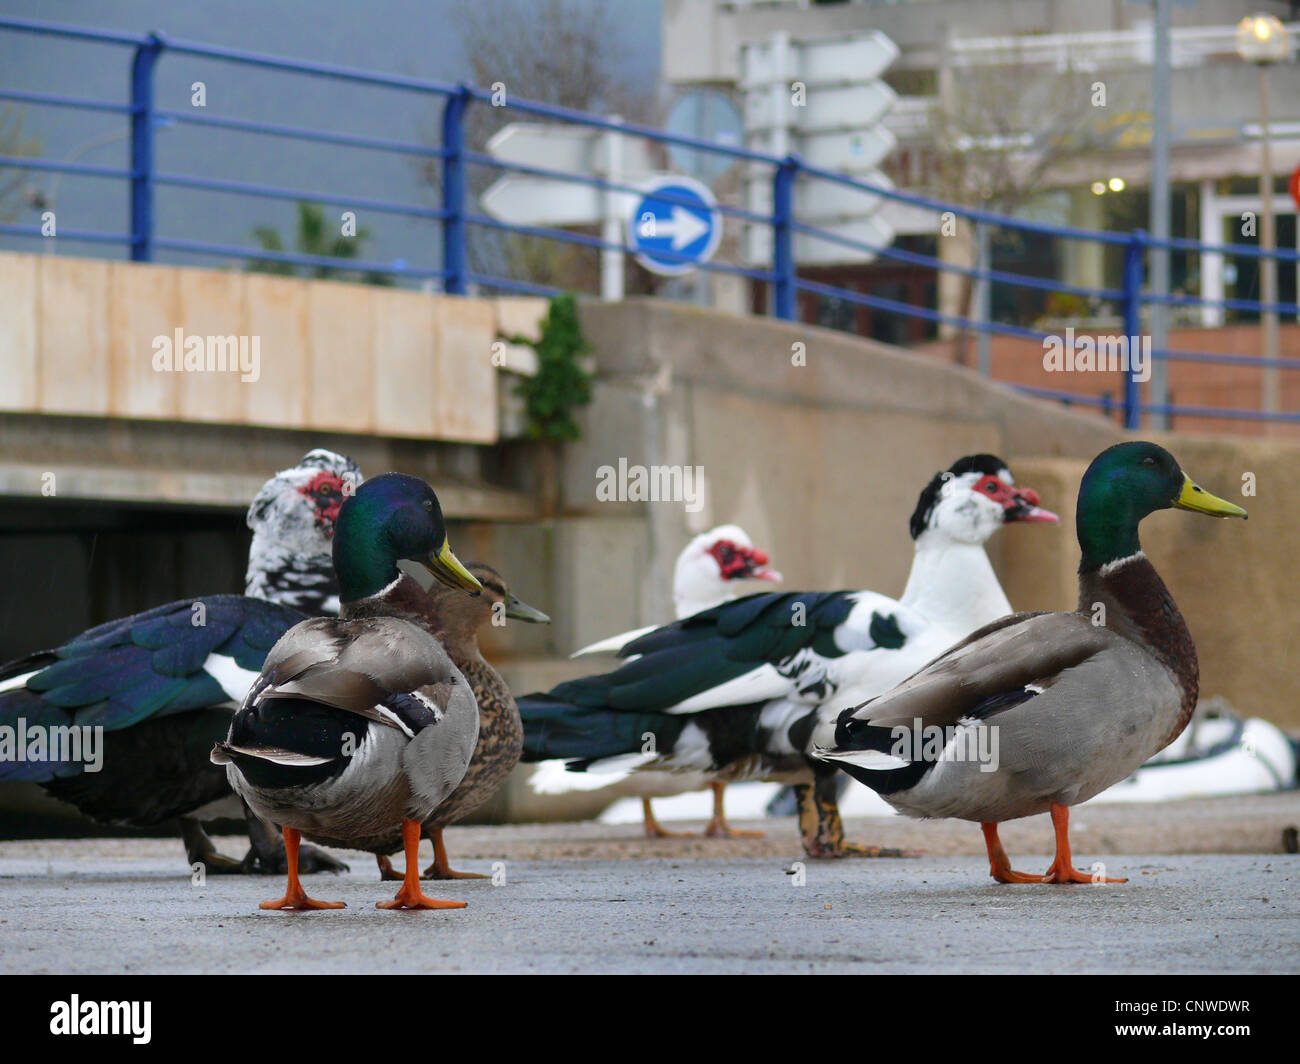 mallard (Anas platyrhynchos), group of bird in the city standing on asphalt looking in the direction pointed out Stock Photo